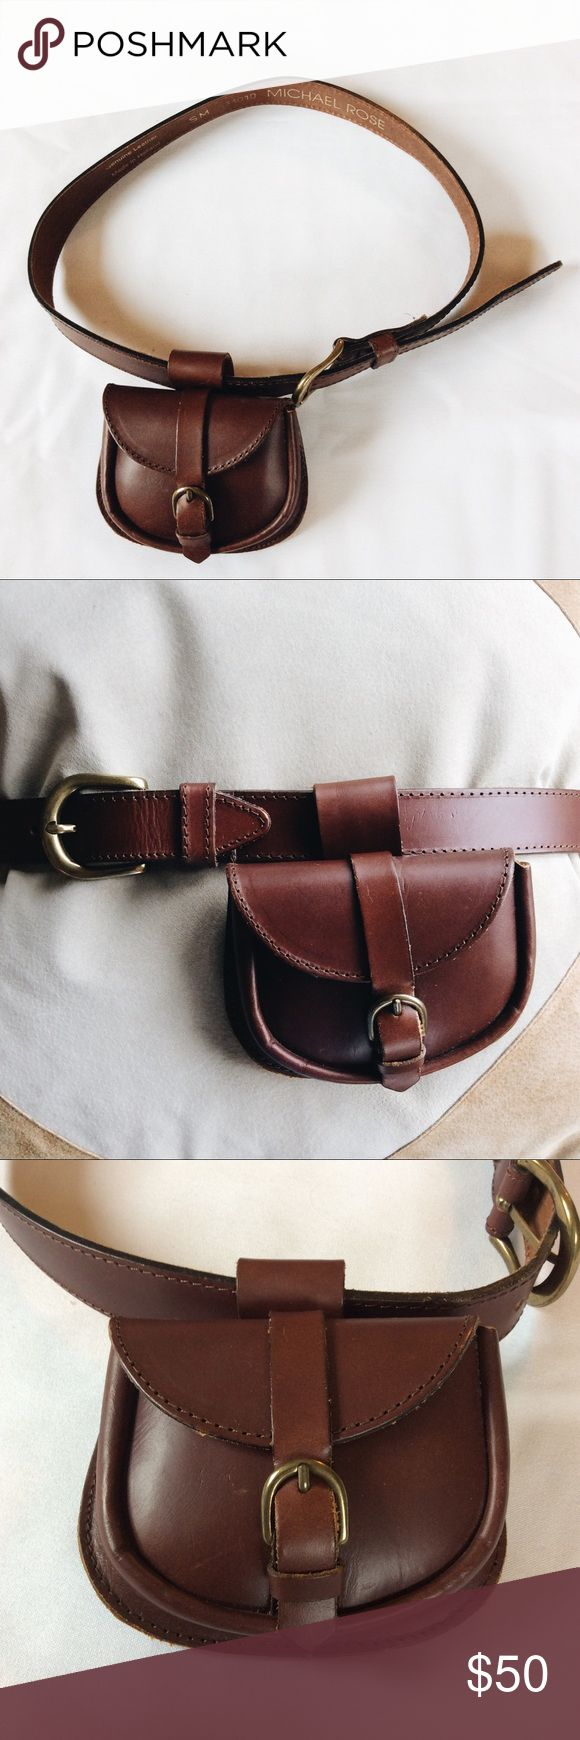 Michael Rose Genuine Leather Belt w/ Pouch Retro and one of a kind! Genuine leather, made in Holland. Size SM. Perfect for a Coachella outfit! Worn a couple times, a few nicks in the leather, but still has a stiff new feel to it. Not Michael Kors, only for exposure. MICHAEL Michael Kors Accessories Belts